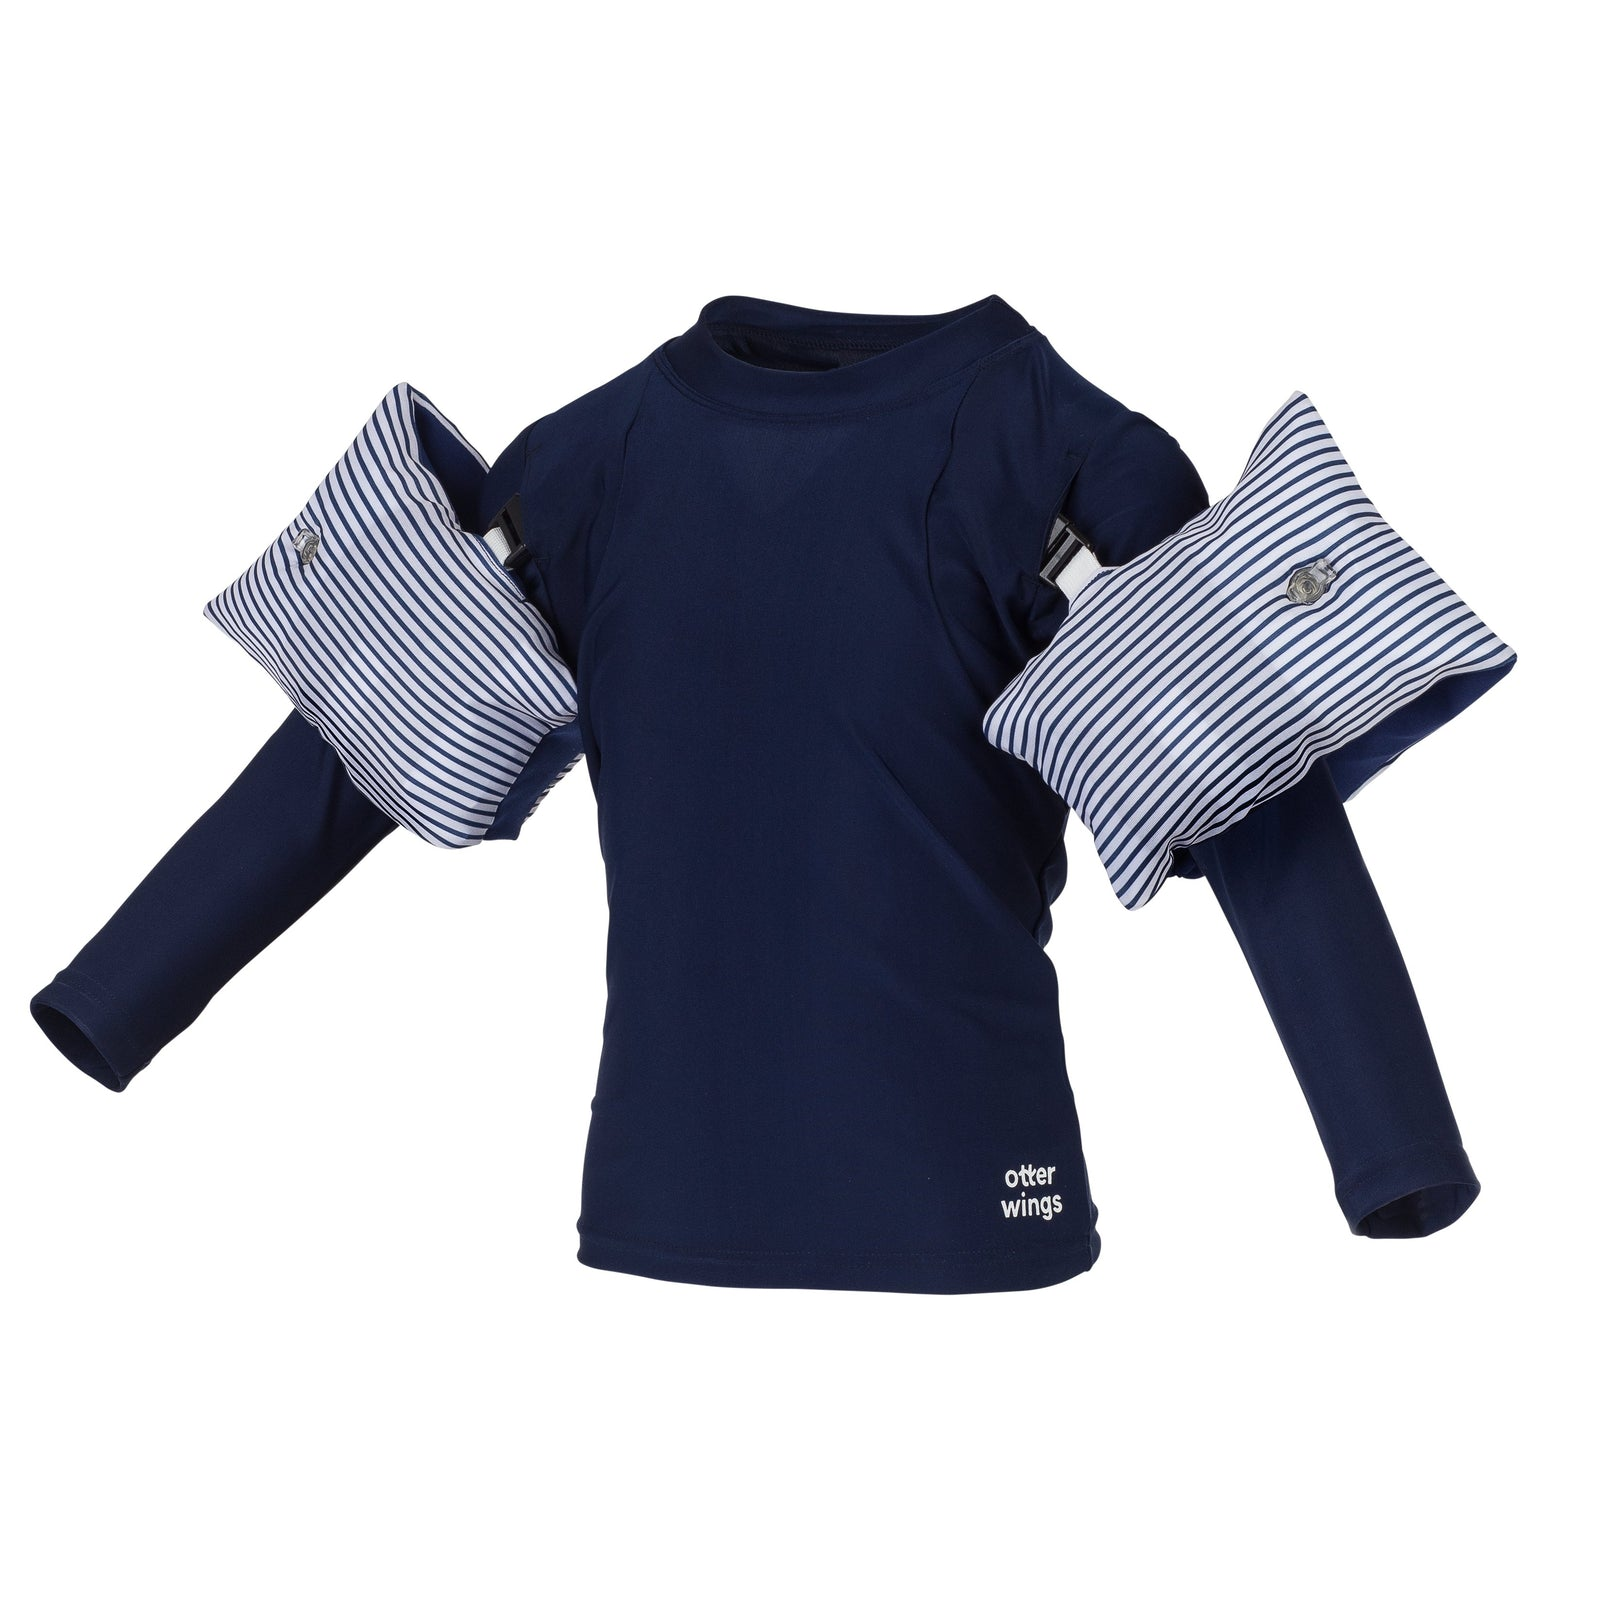 otter wings | Navy Blue | Long Sleeve